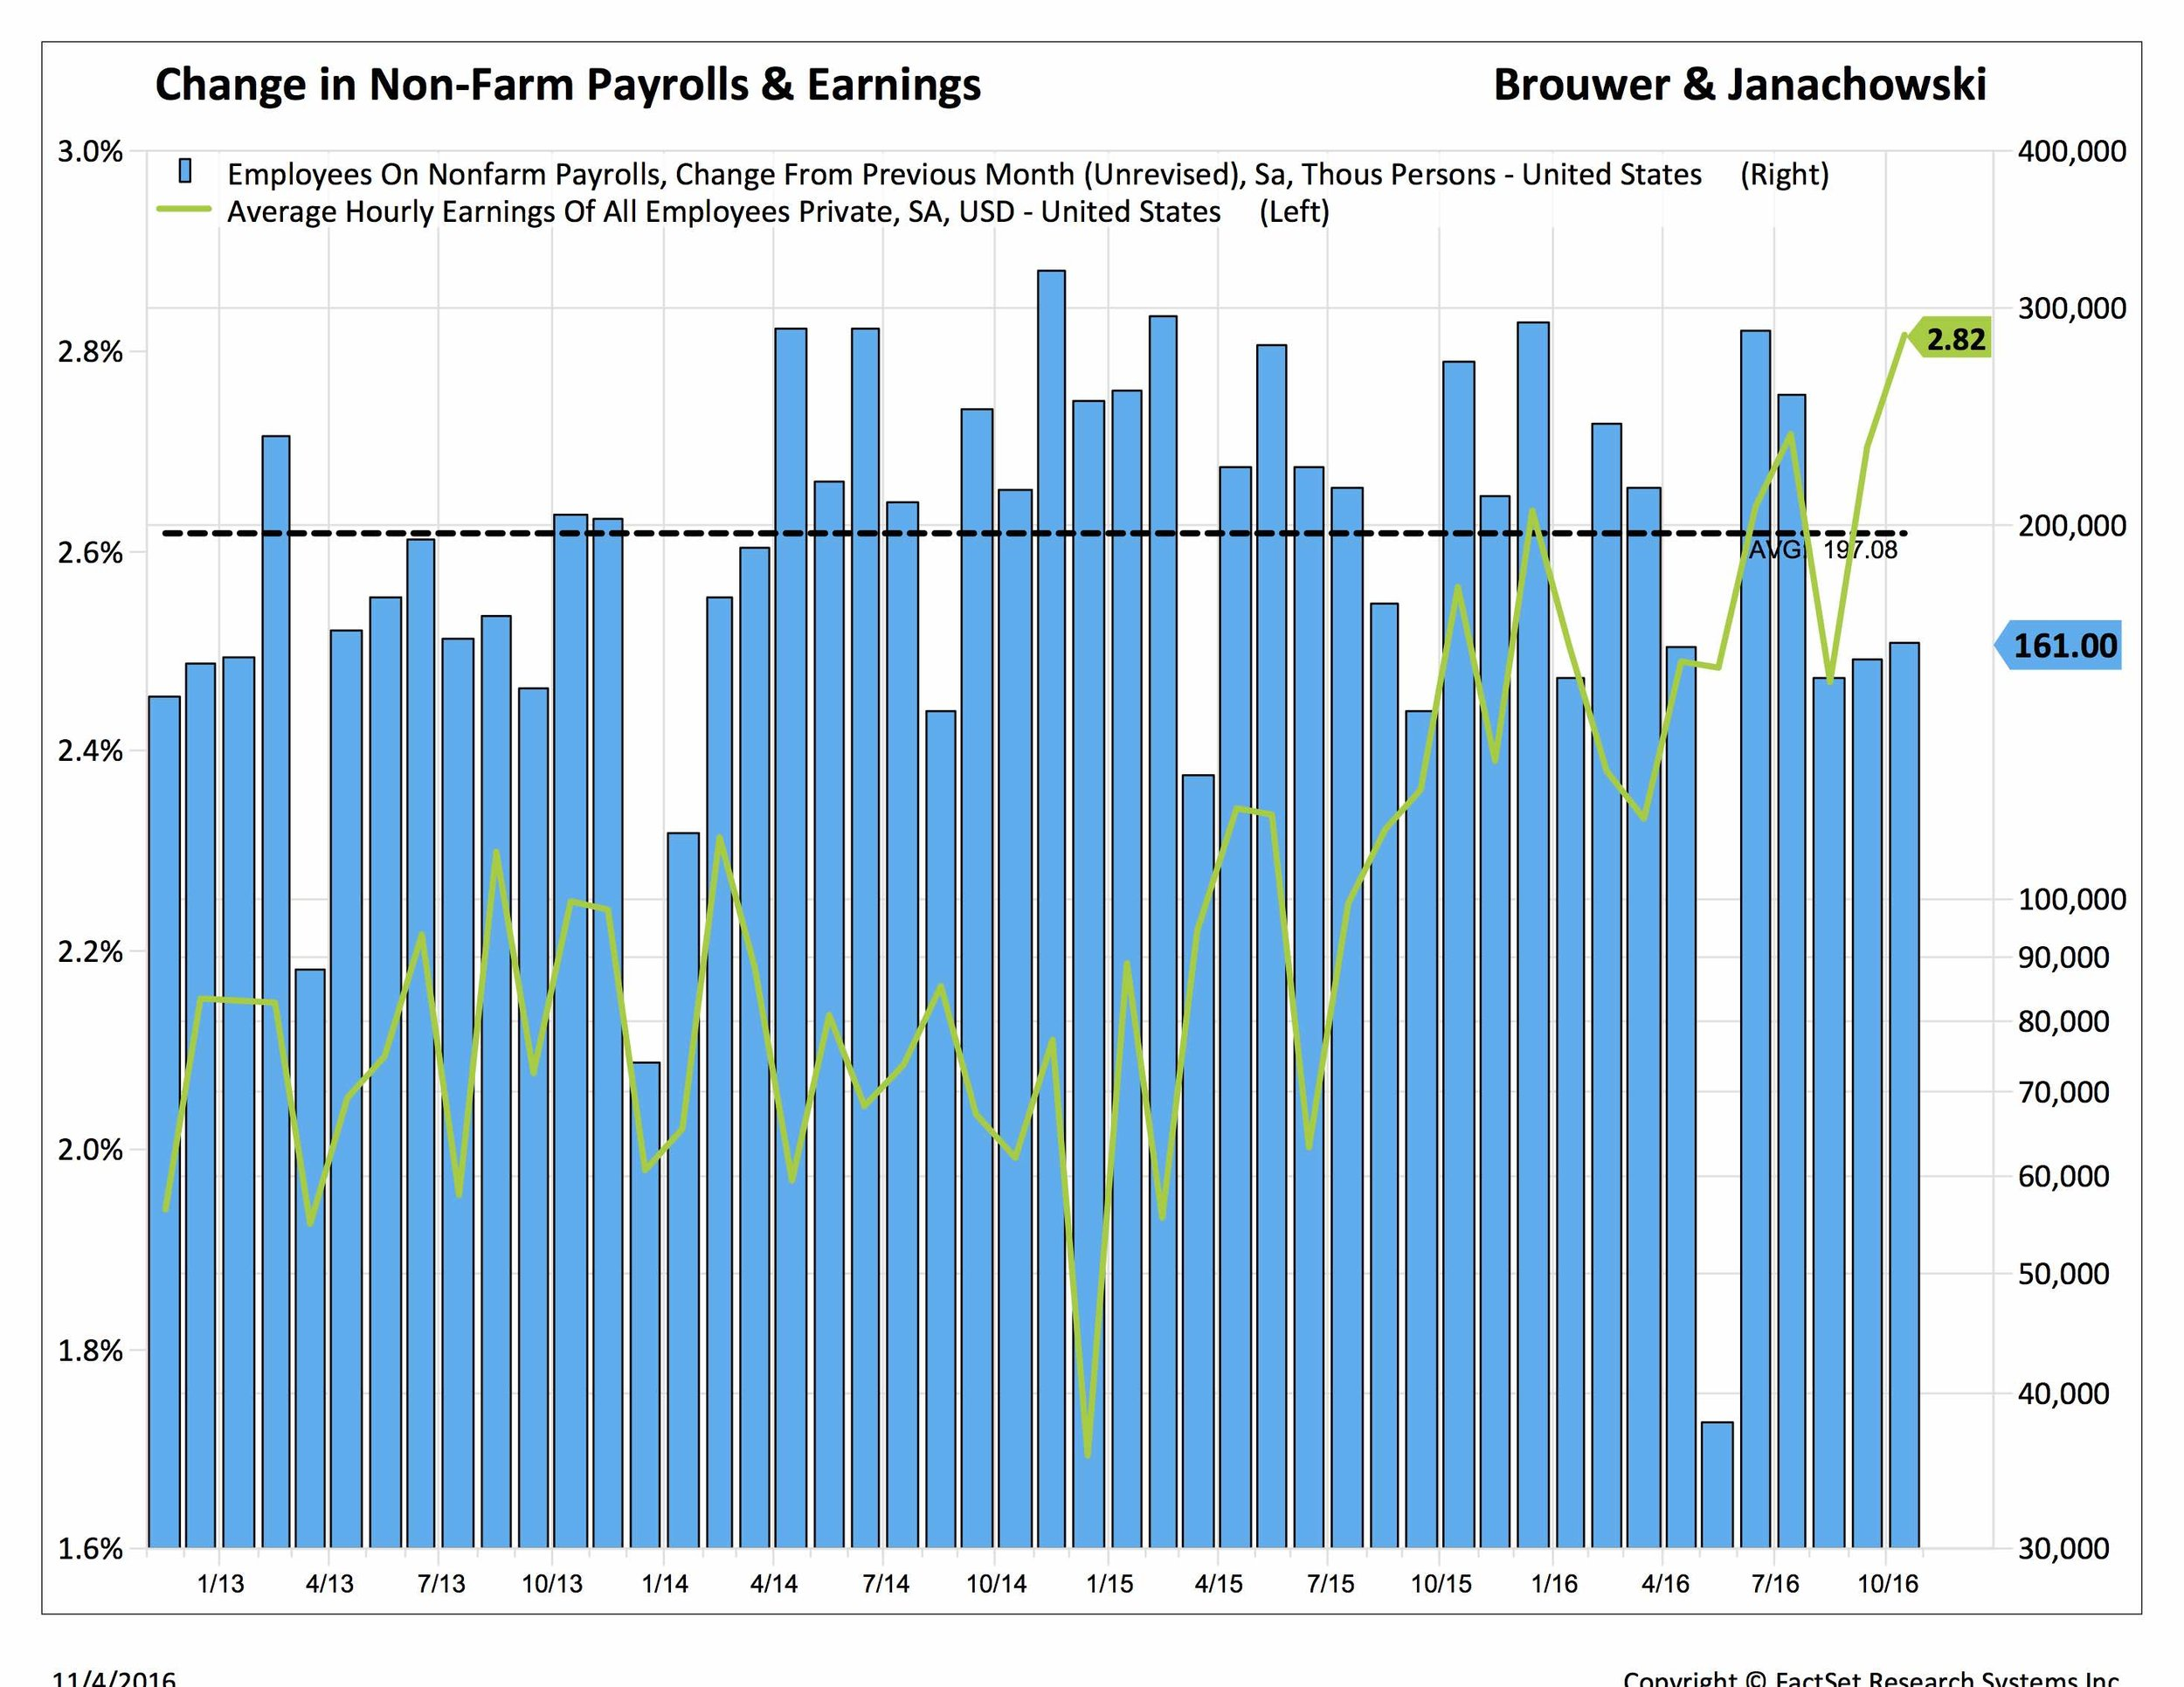 change in non-farm payrolls and earnings